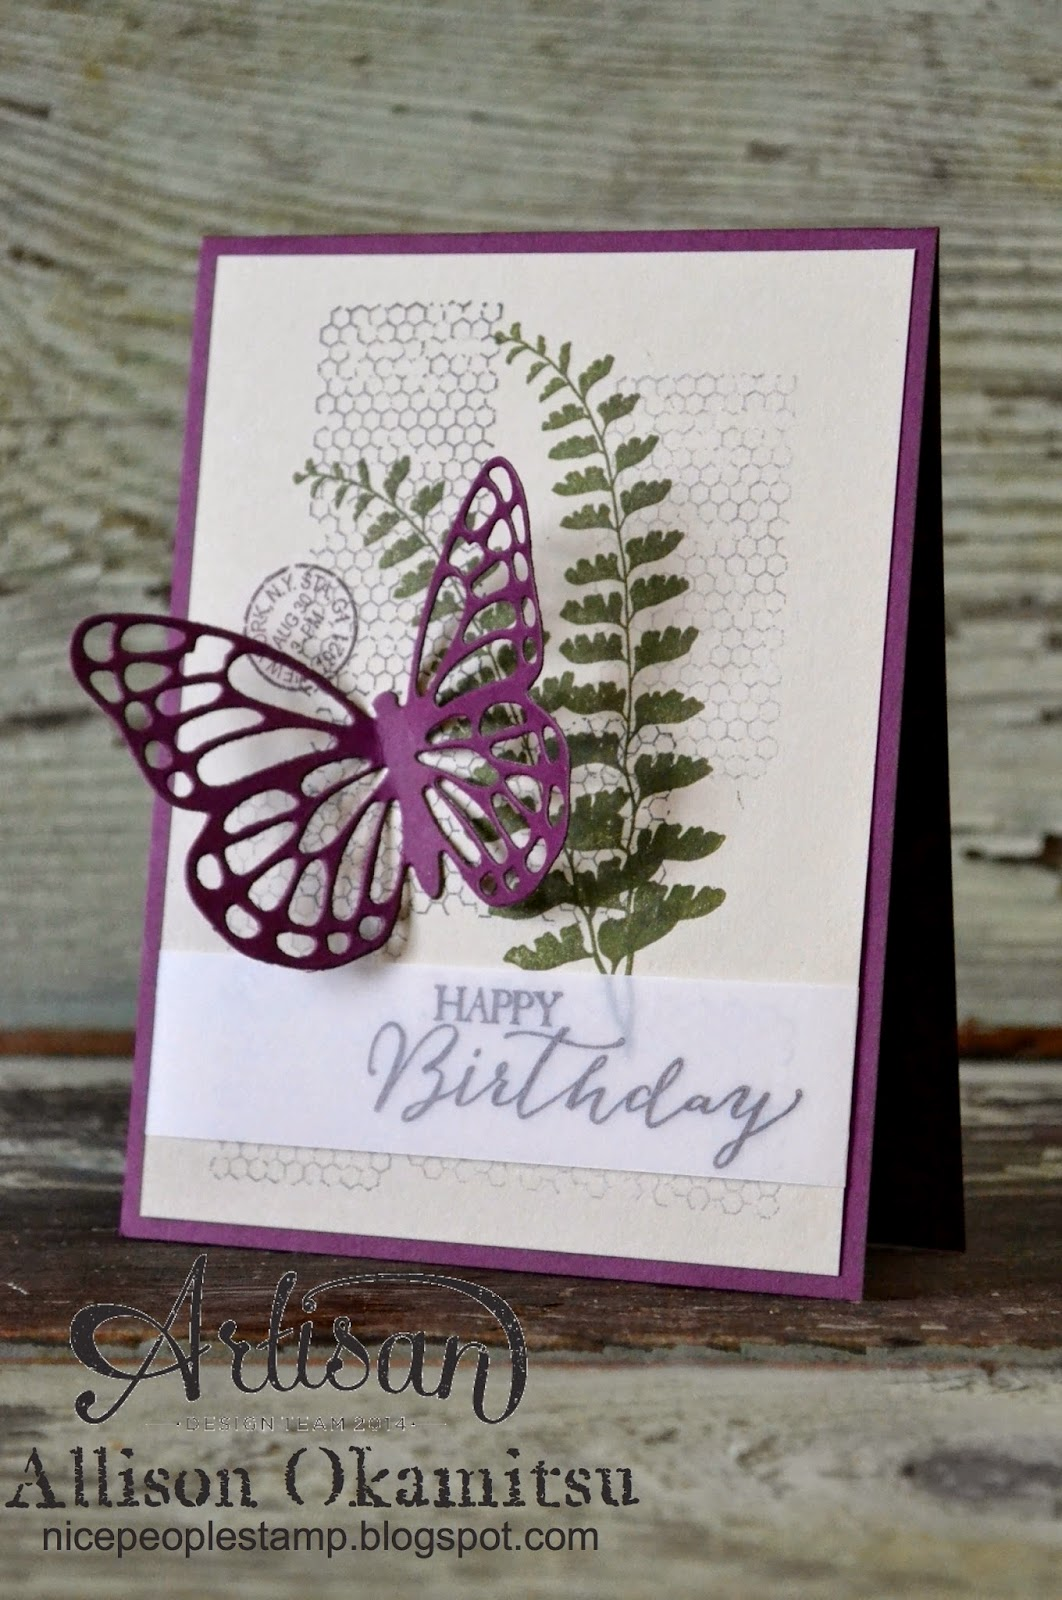 nice people stamp  stampin' up canada butterfly basics